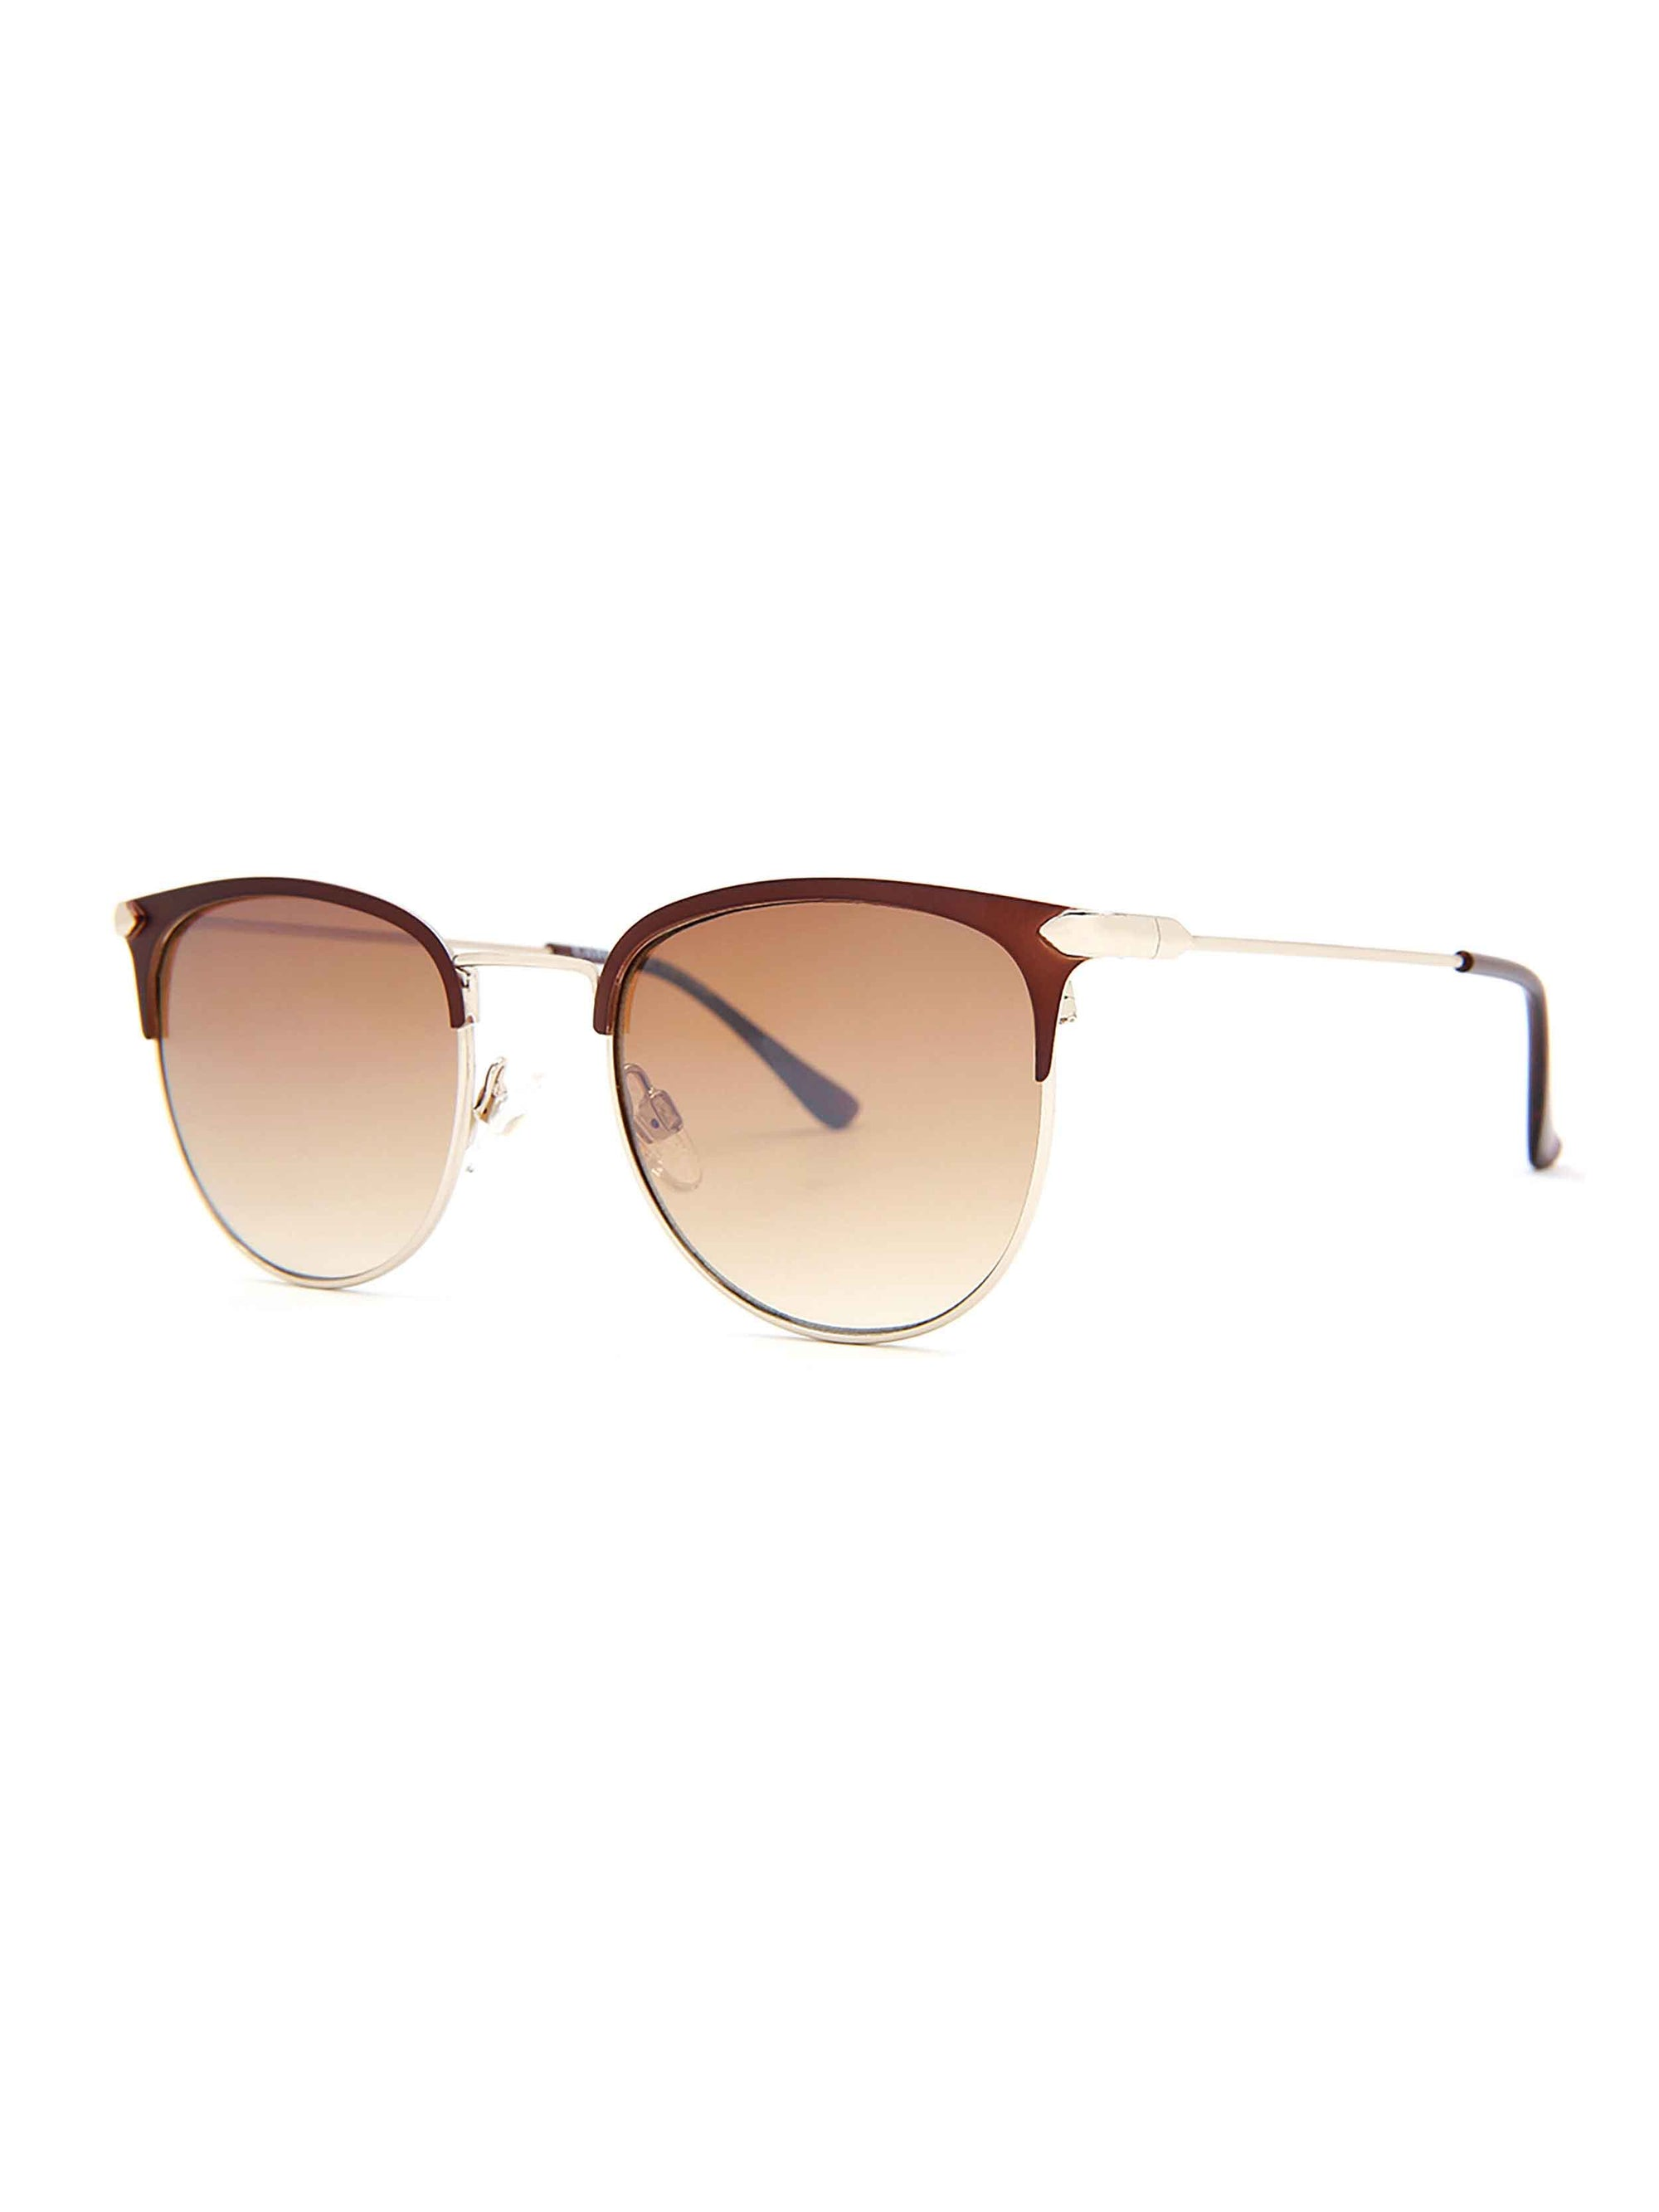 Lentes Carolina Lemke CL6578 01